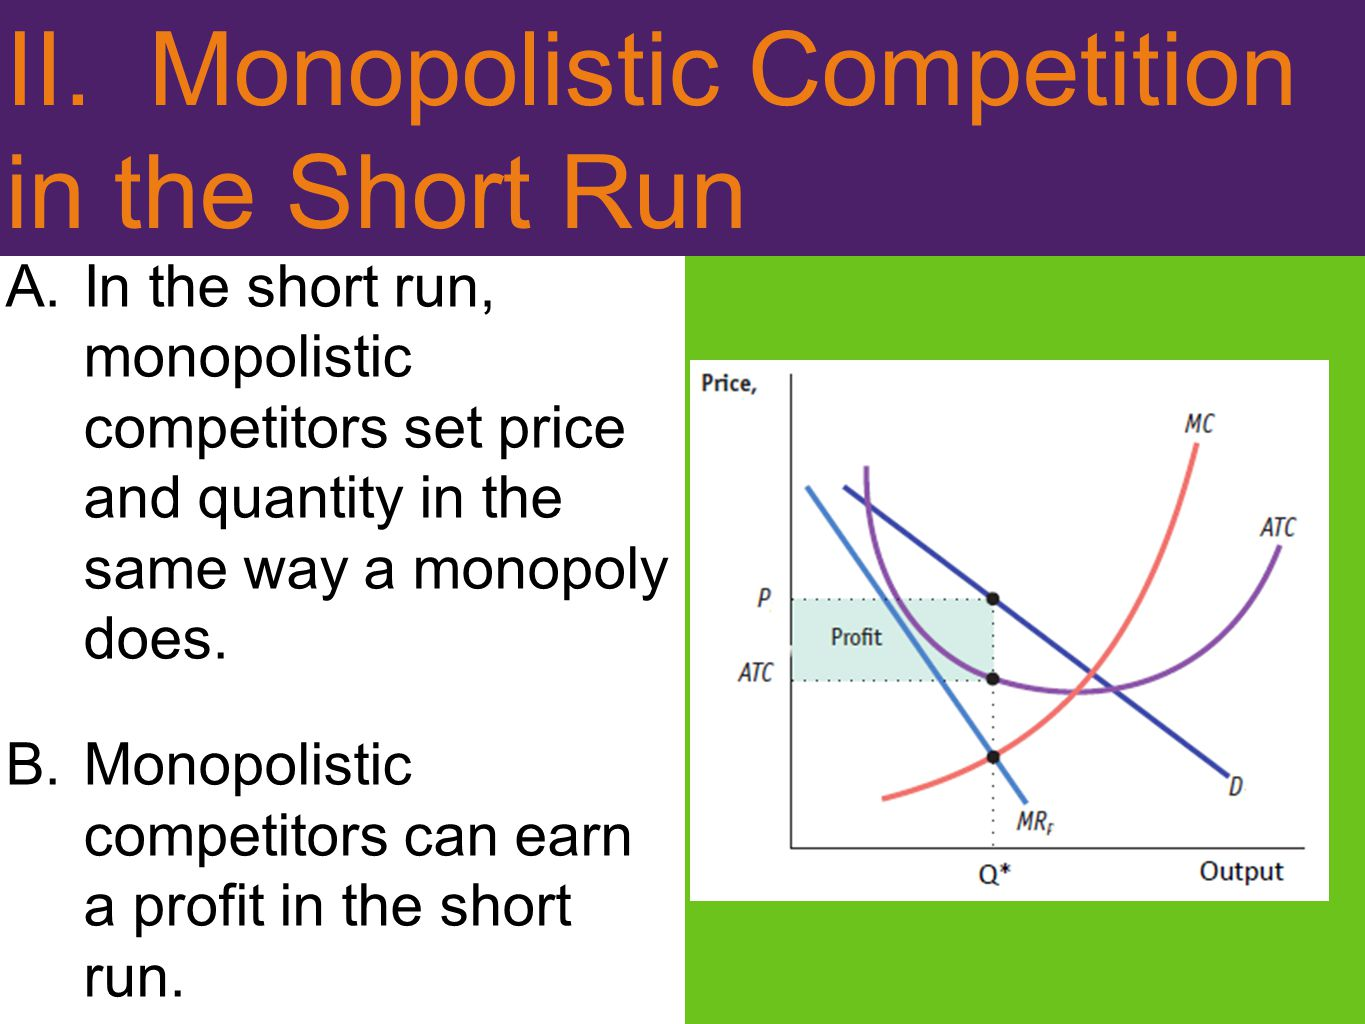 II. Monopolistic Competition in the Short Run